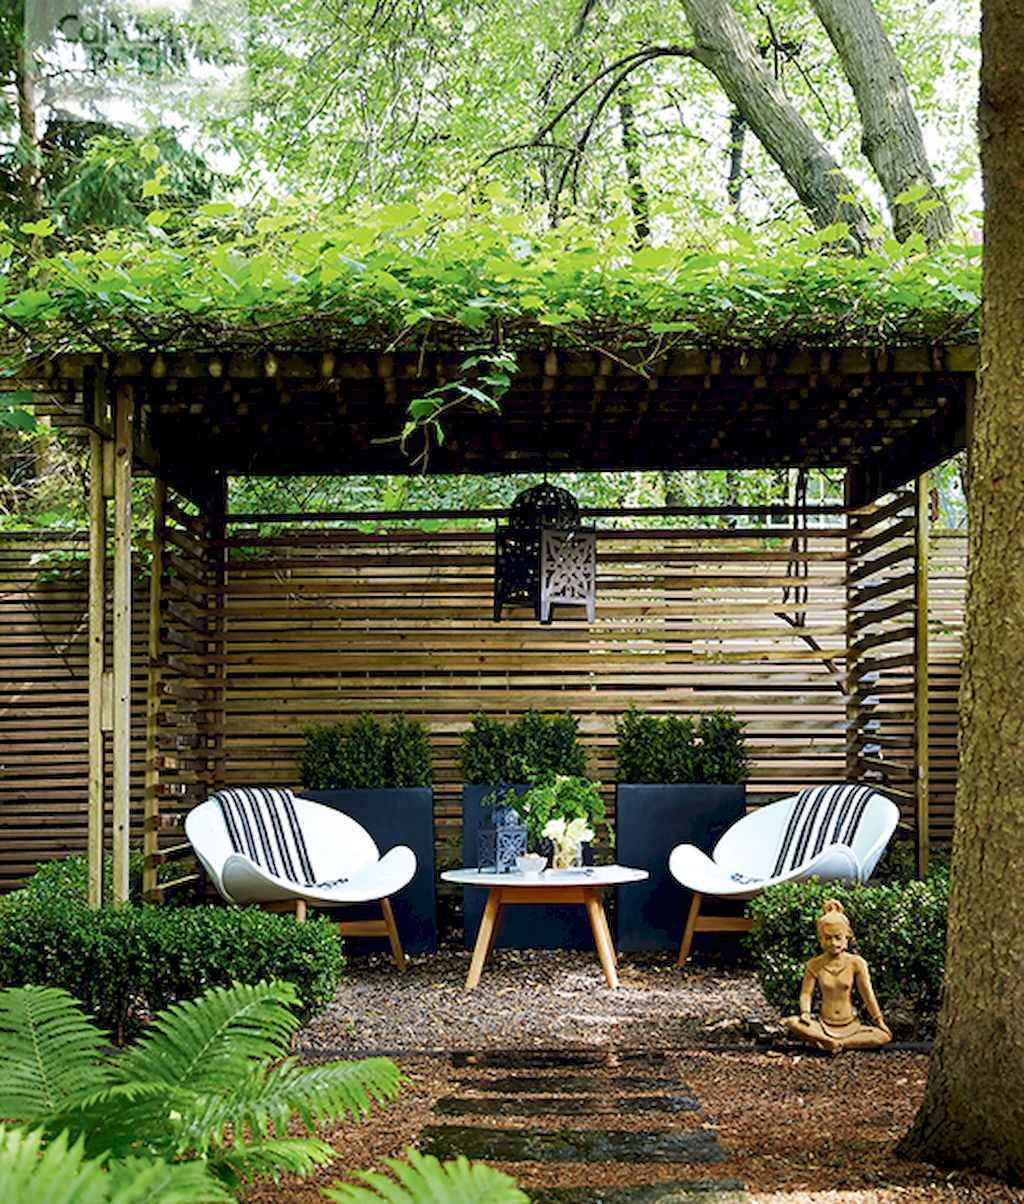 70 Creative Diy Backyard Privacy Ideas On A Budget Roomadness with regard to Backyard Privacy Ideas